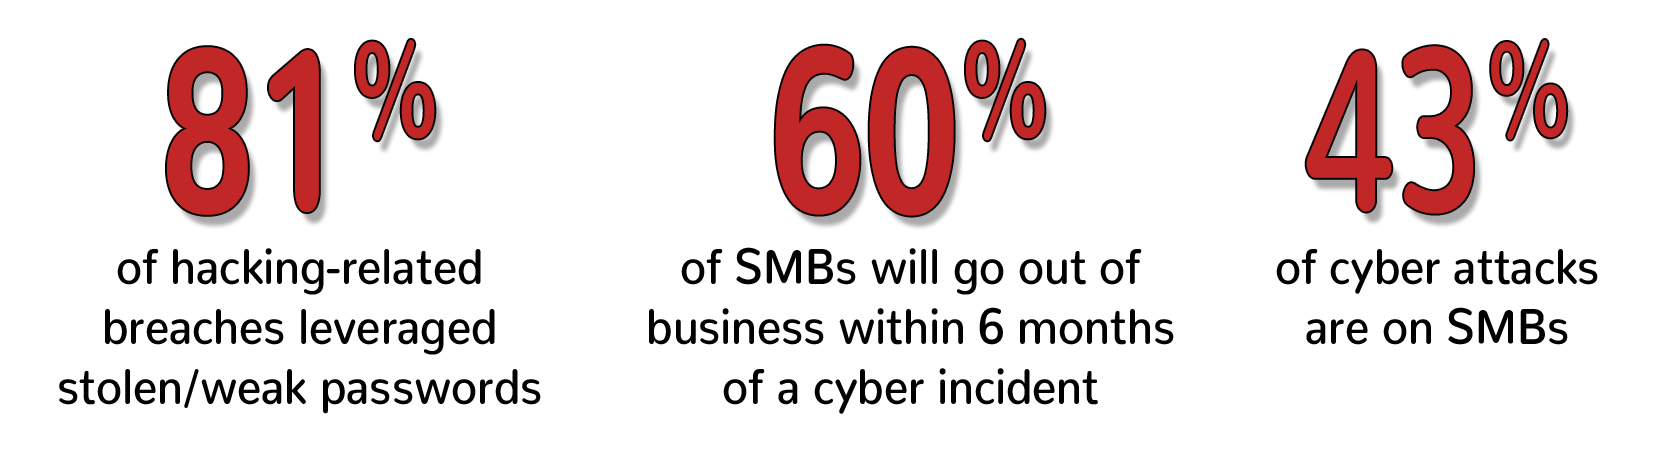 Image content: 81% of hacking-related breaches leveraged stolen/weak passwords. 60% of SMBs will go out of business within 6 months of a cyber incident. 43% of cyber attacks are on SMBs.